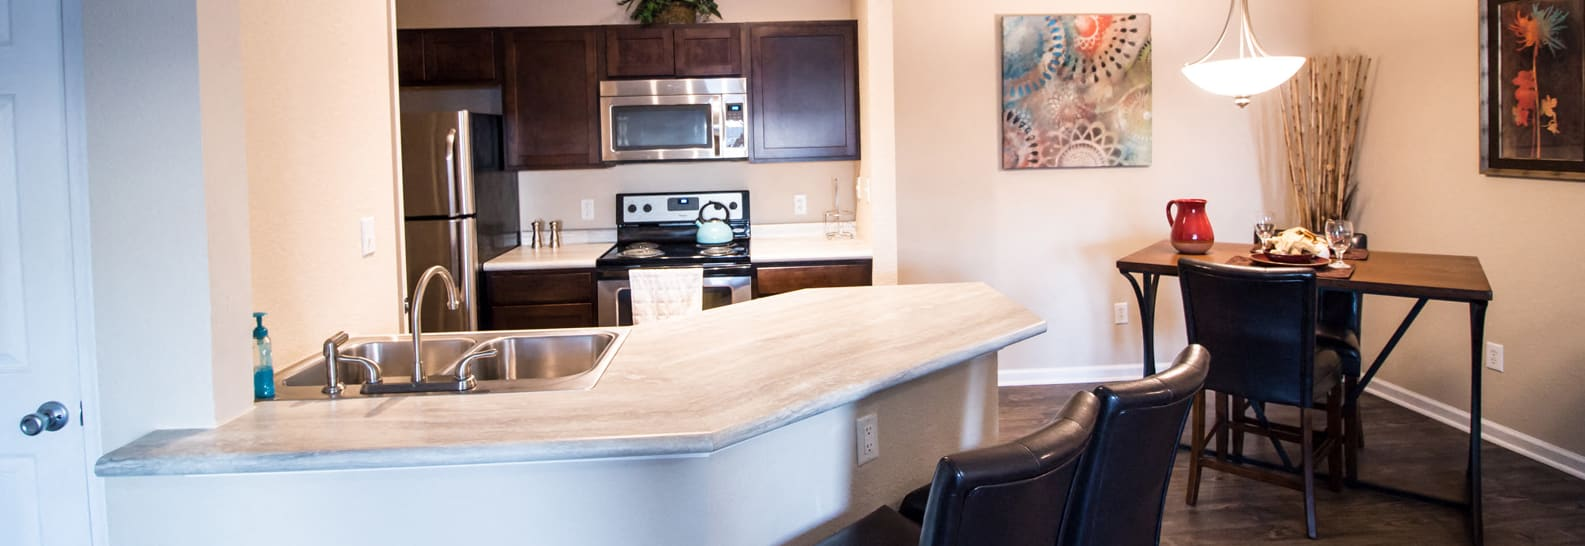 Top-of-the-line Kitchens, at The Vue, 2882 Comstock, Bellevue, NE 68123